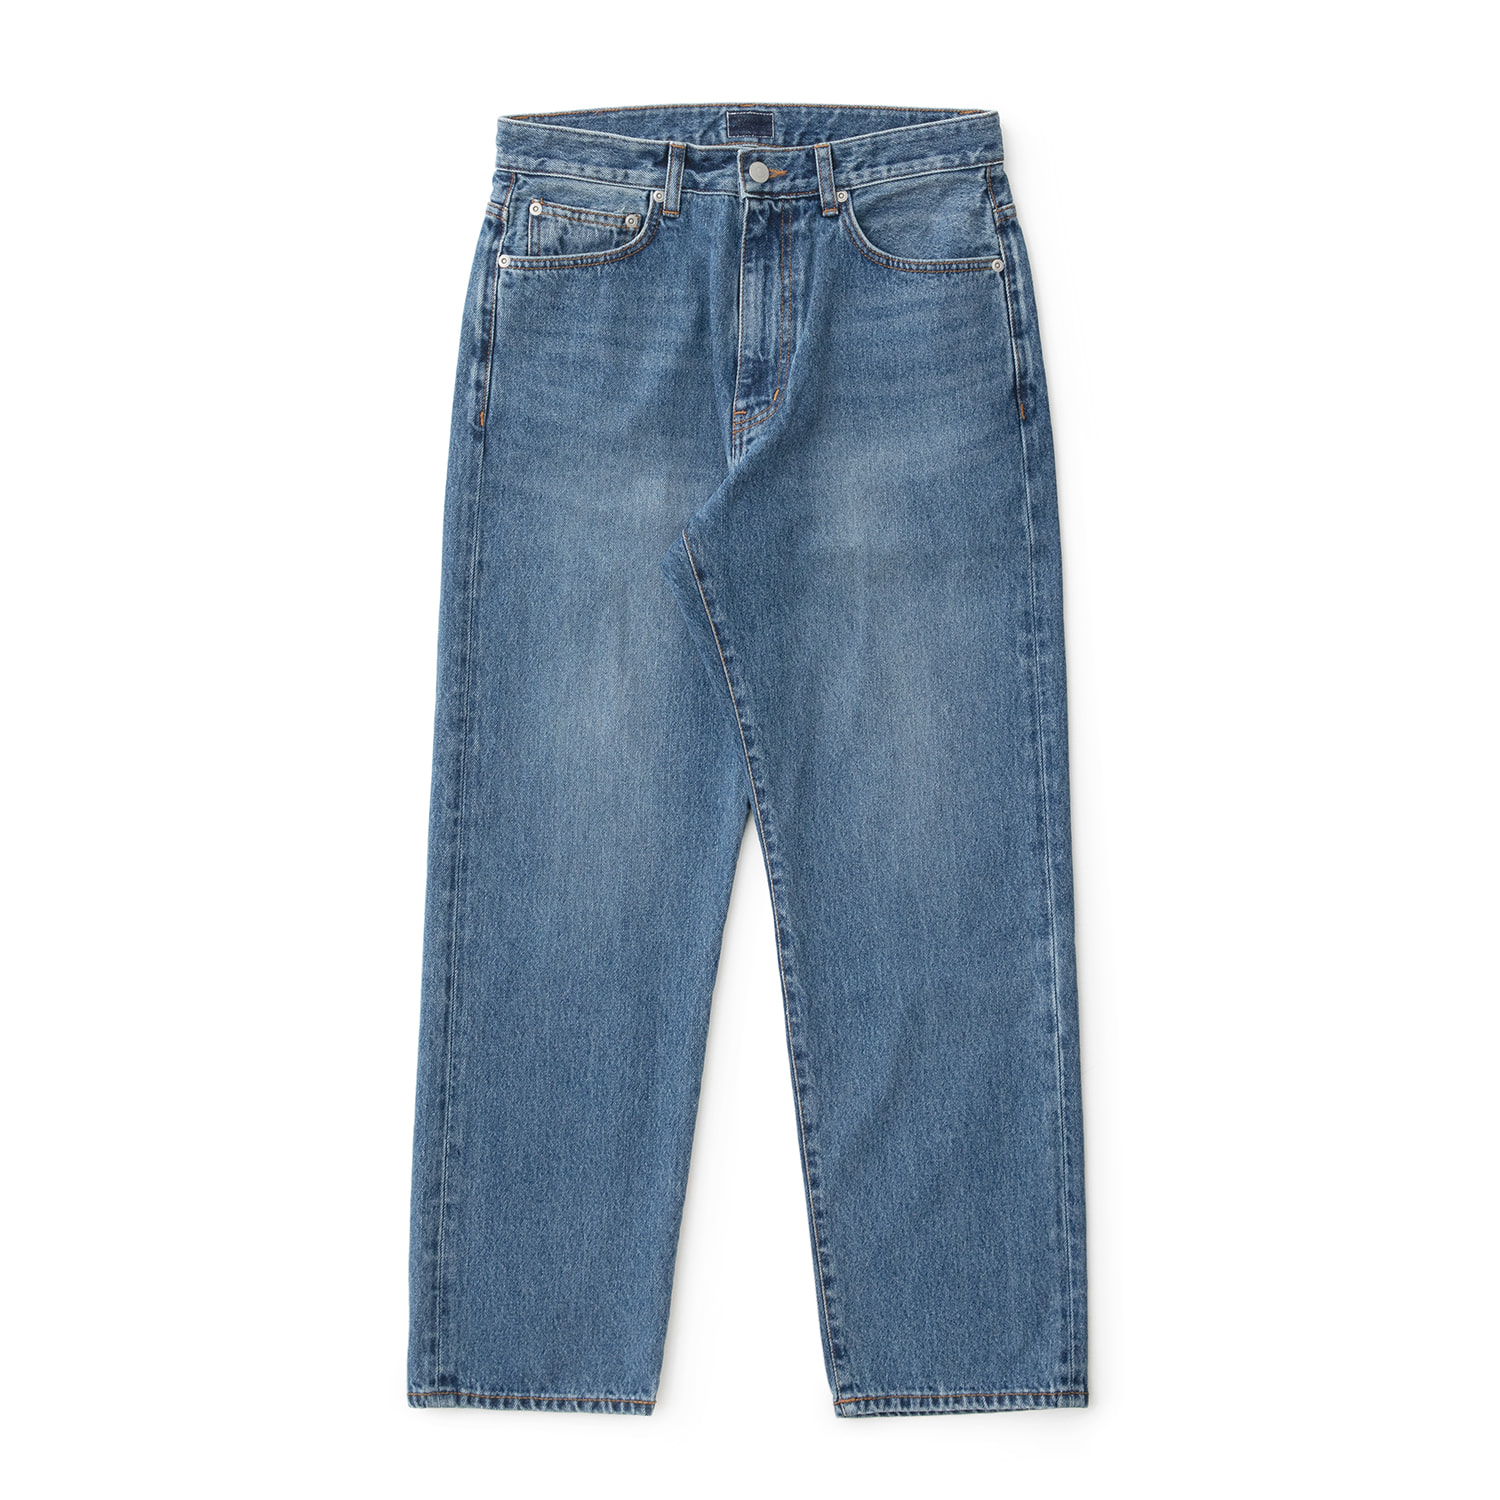 21SS Study Denim Type 4 (Mid Blue)